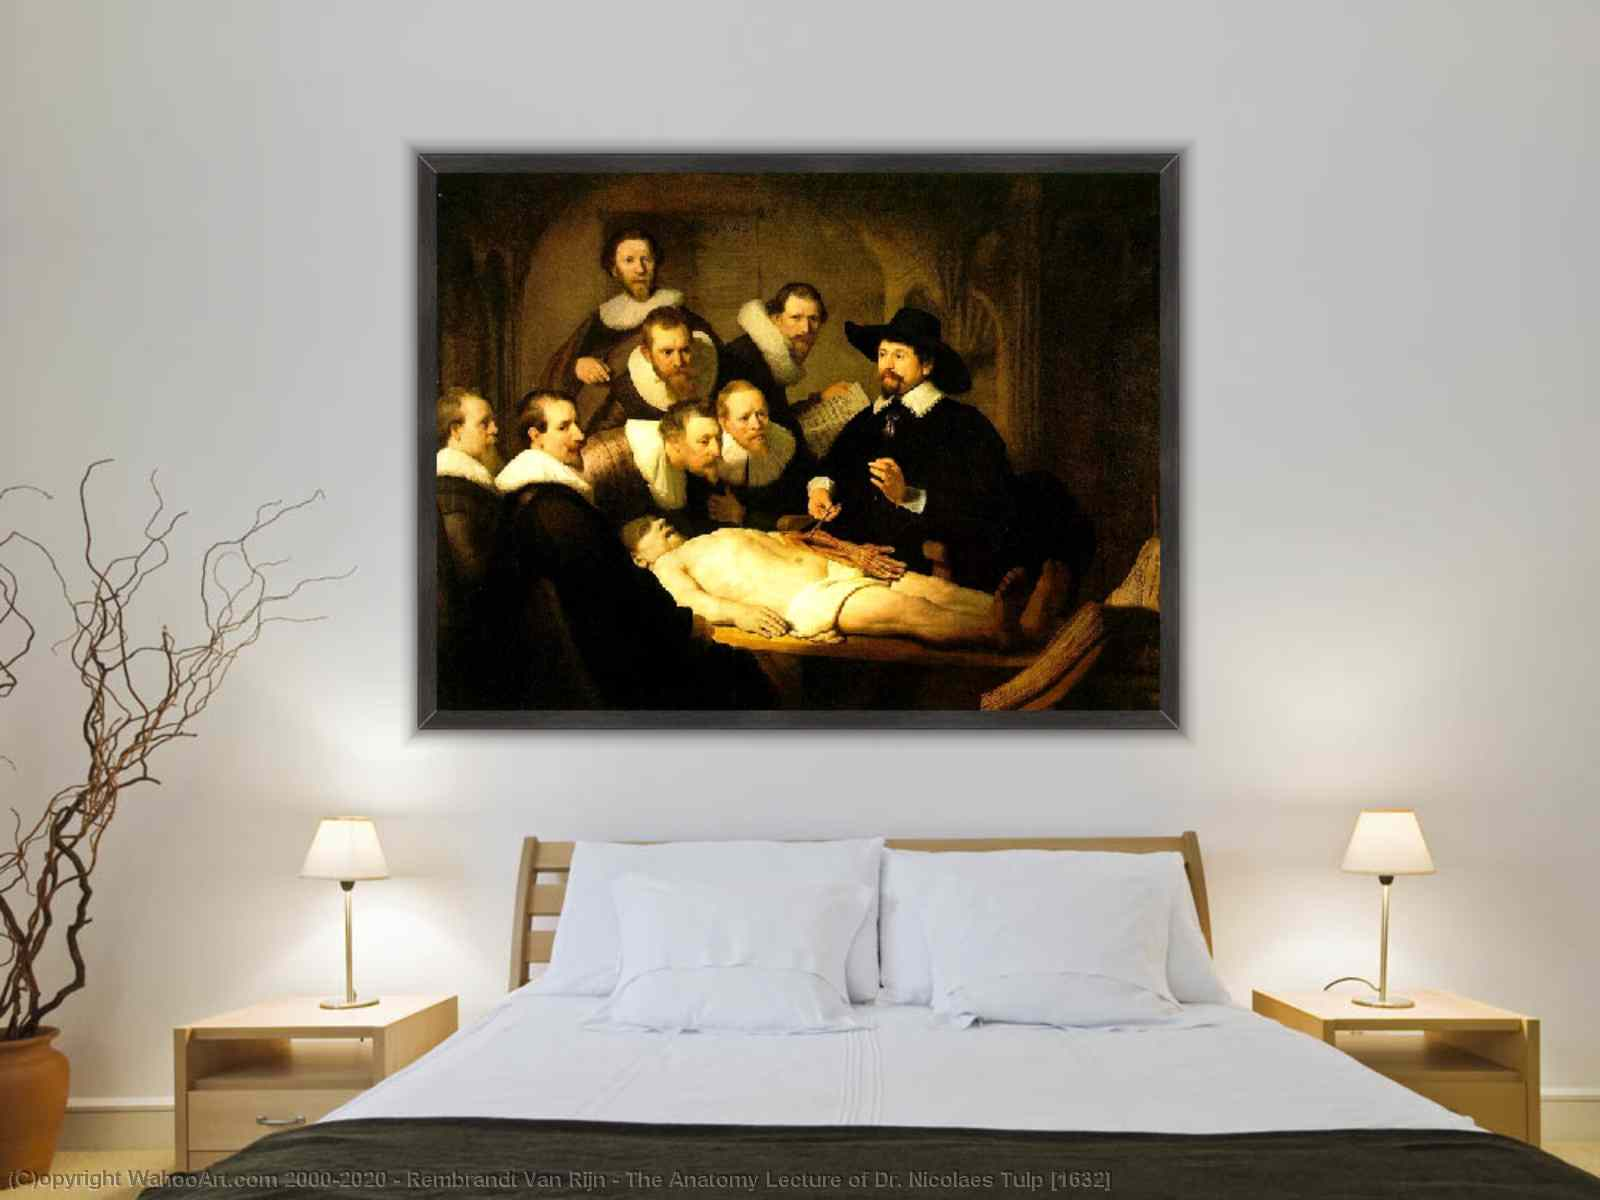 The Anatomy Lecture of Dr. Nicolaes Tulp [1632] by Rembrandt Van Rijn